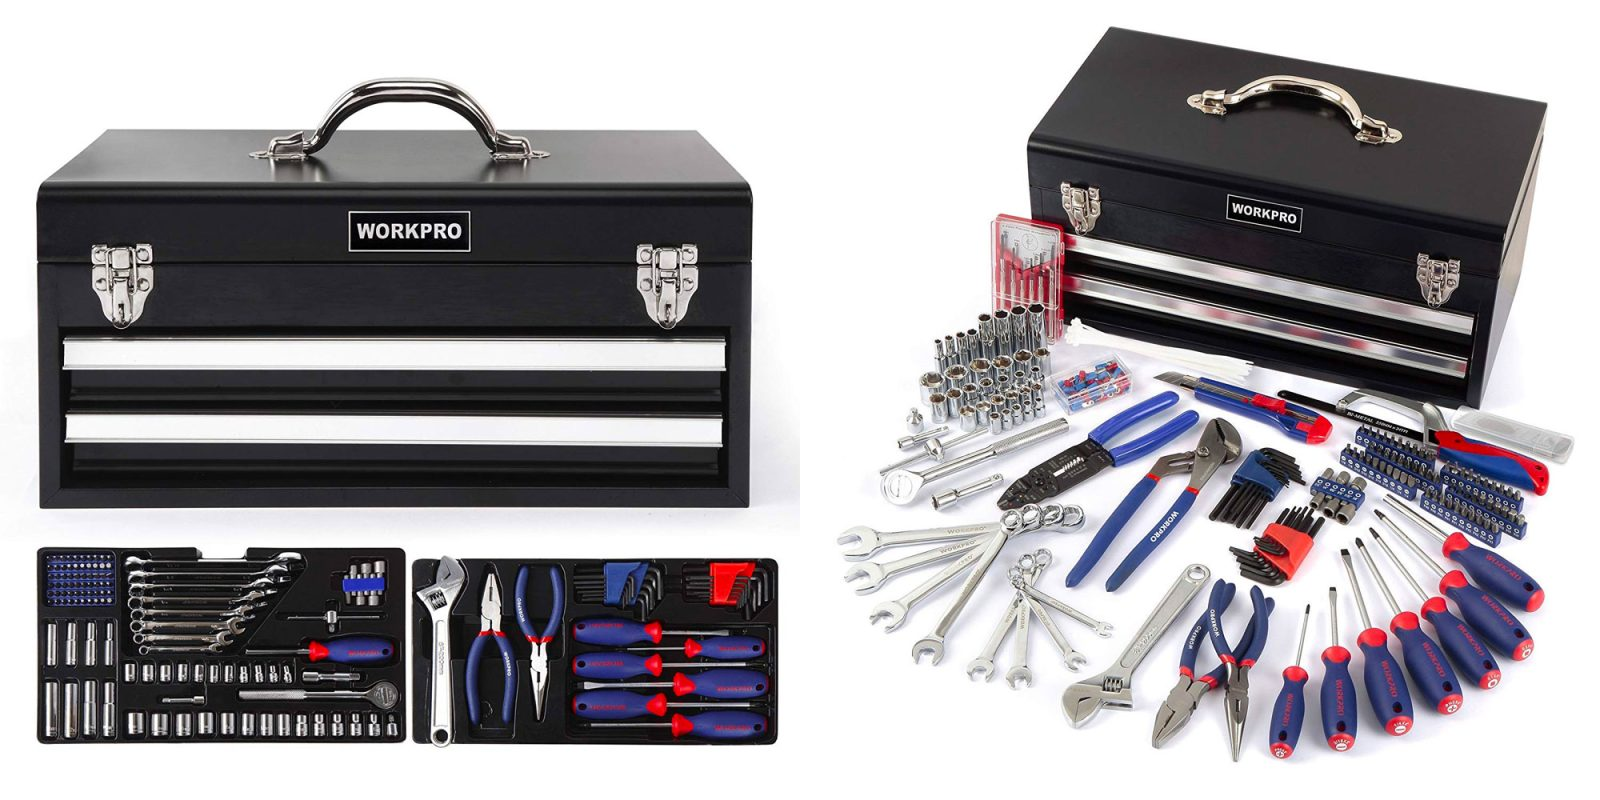 This 239-piece tool set is a must for DIYers at nearly 50% off, now $52.50